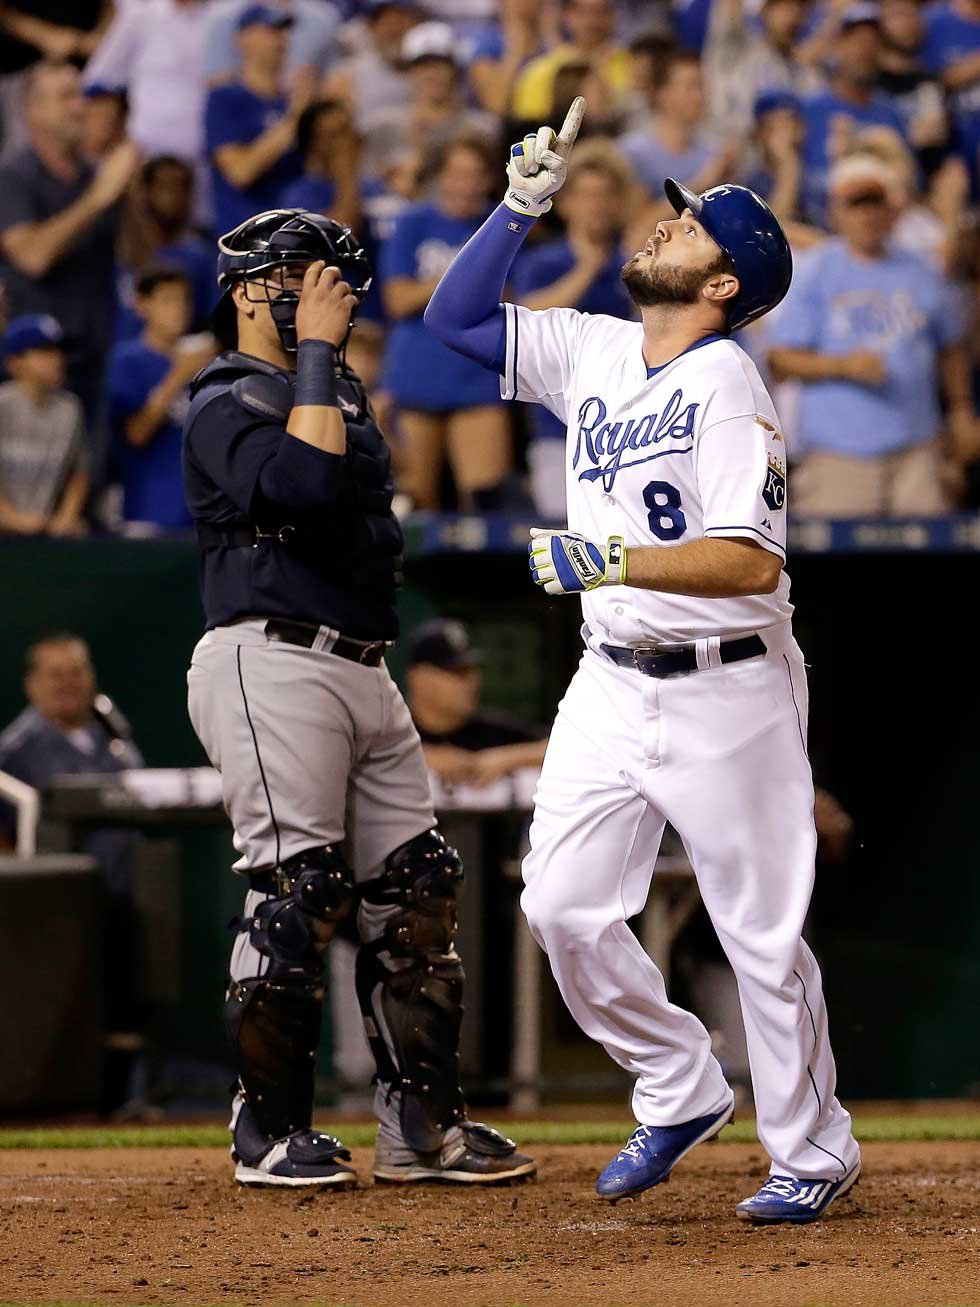 Moustakas points skyward in memory of his mother after hitting a home run on Sept. 24 (AP)